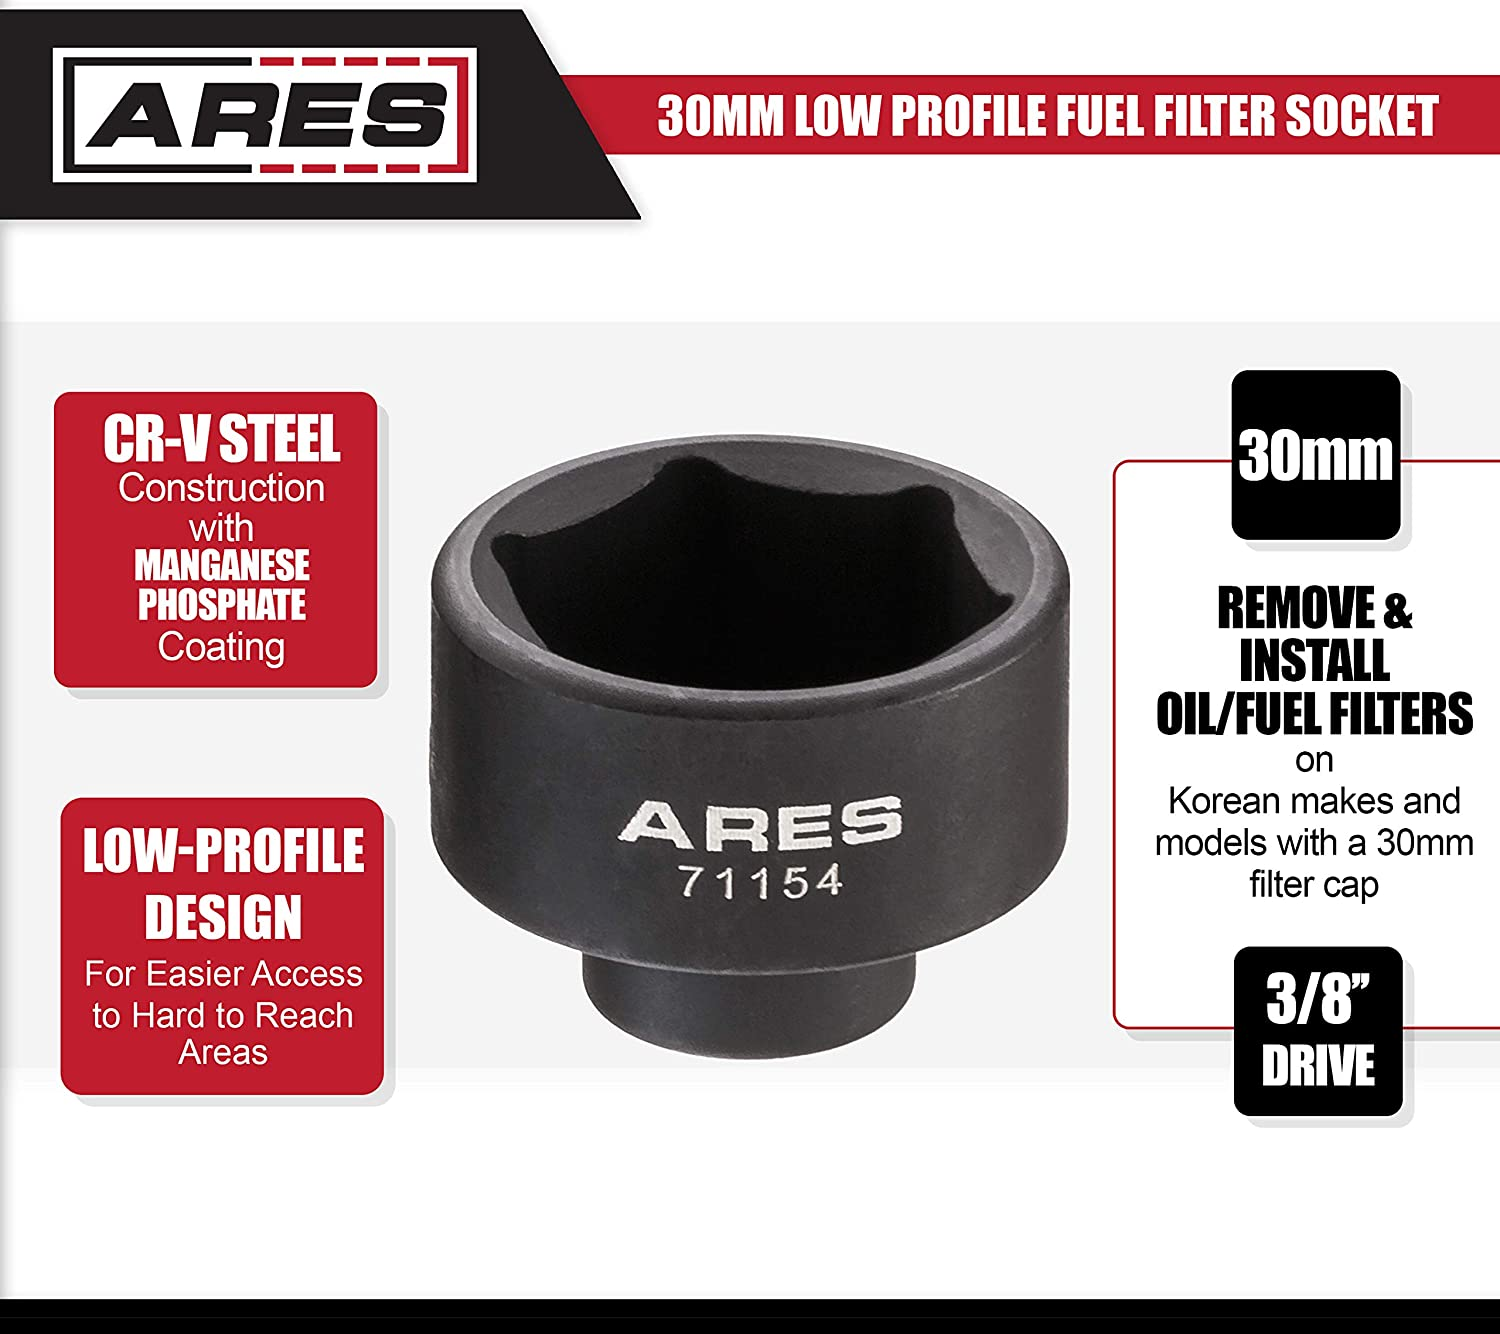 Low Profile Design for Easy Access ARES 71152-27mm Low Profile Fuel Filter Socket Chrome Vanadium Steel with Manganese Phosphate Coating to Resist Rust and Corrosion